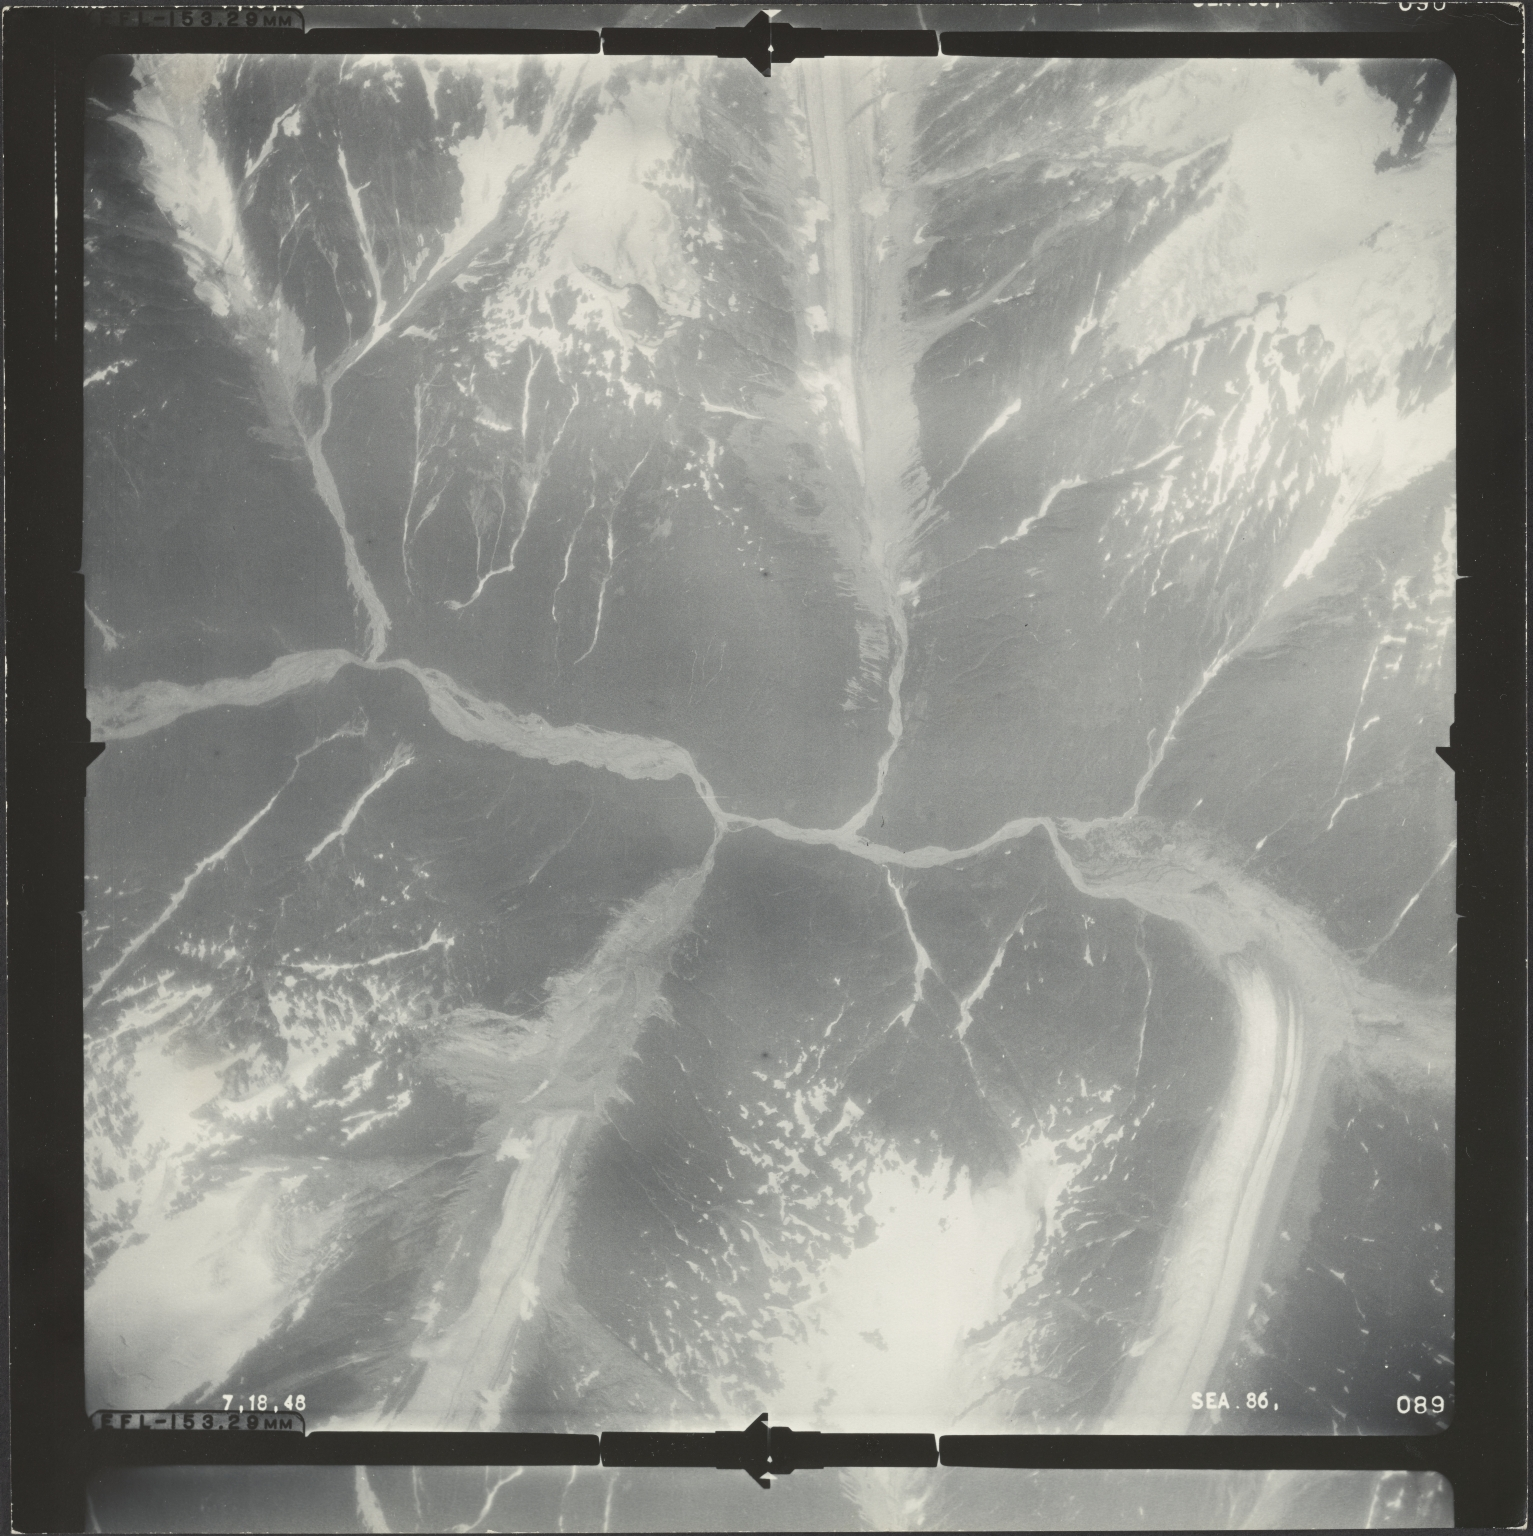 Leduc Glacier, aerial photograph SEA 86-089, British Columbia